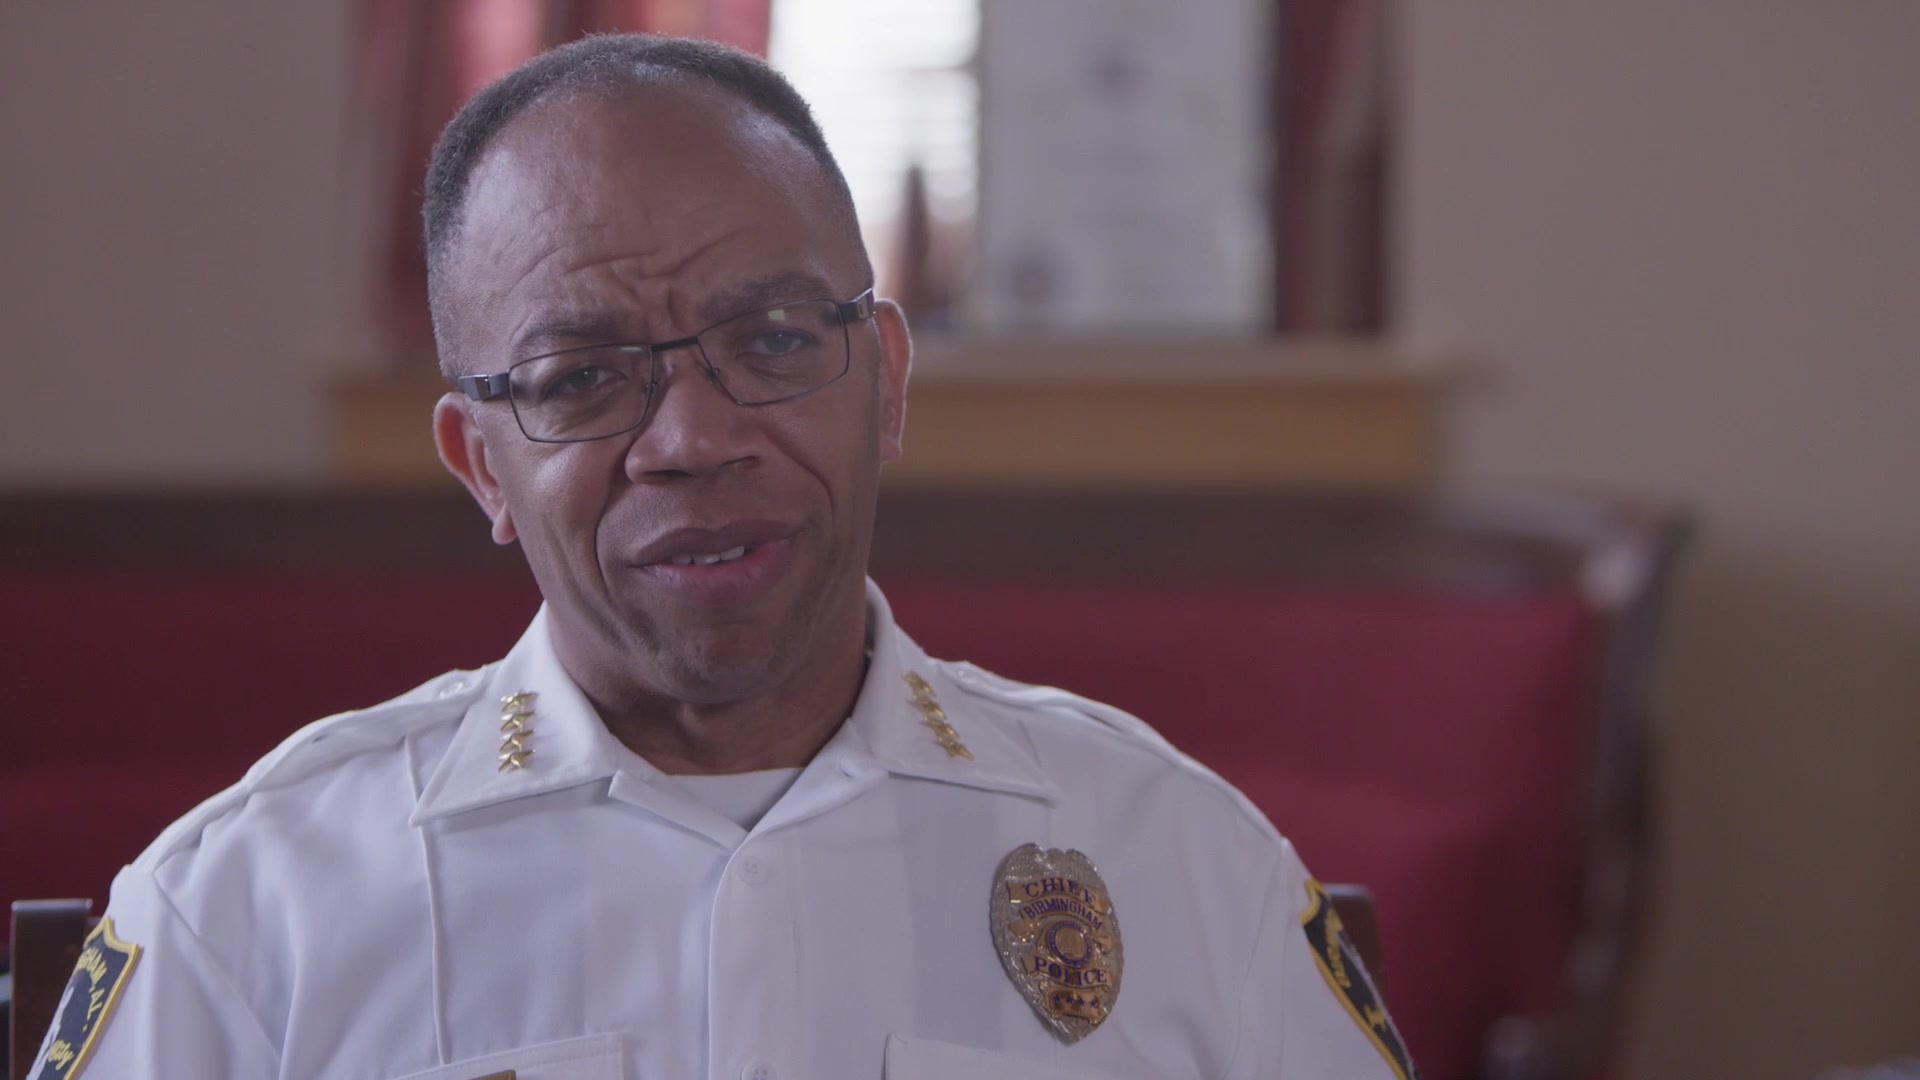 U.S. Army Reserve Maj. Gen. A.C. Roper currently serves as deputy commanding general of U.S. Army Reserve Command. In this 2016 video, the then-commanding general for the 80th Training Command (TASS) and chief of police for the Birmingham Police Department (AL) Major Crimes, discusses the importance of goals and how the Army Reserve has taught him leadership skills to be successful in both his military and civilian career.